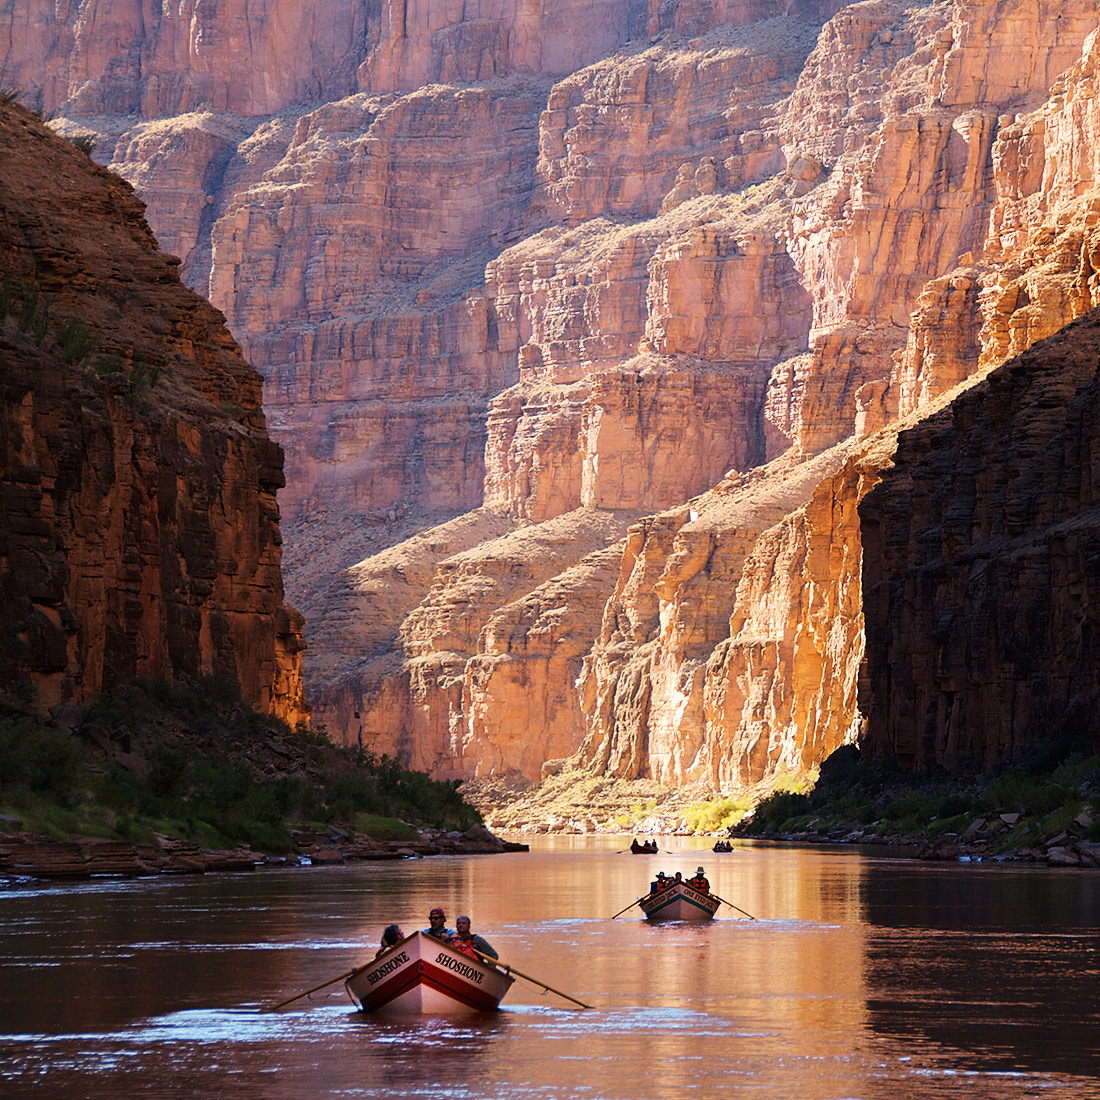 Dories rafting in the Grand Canyon